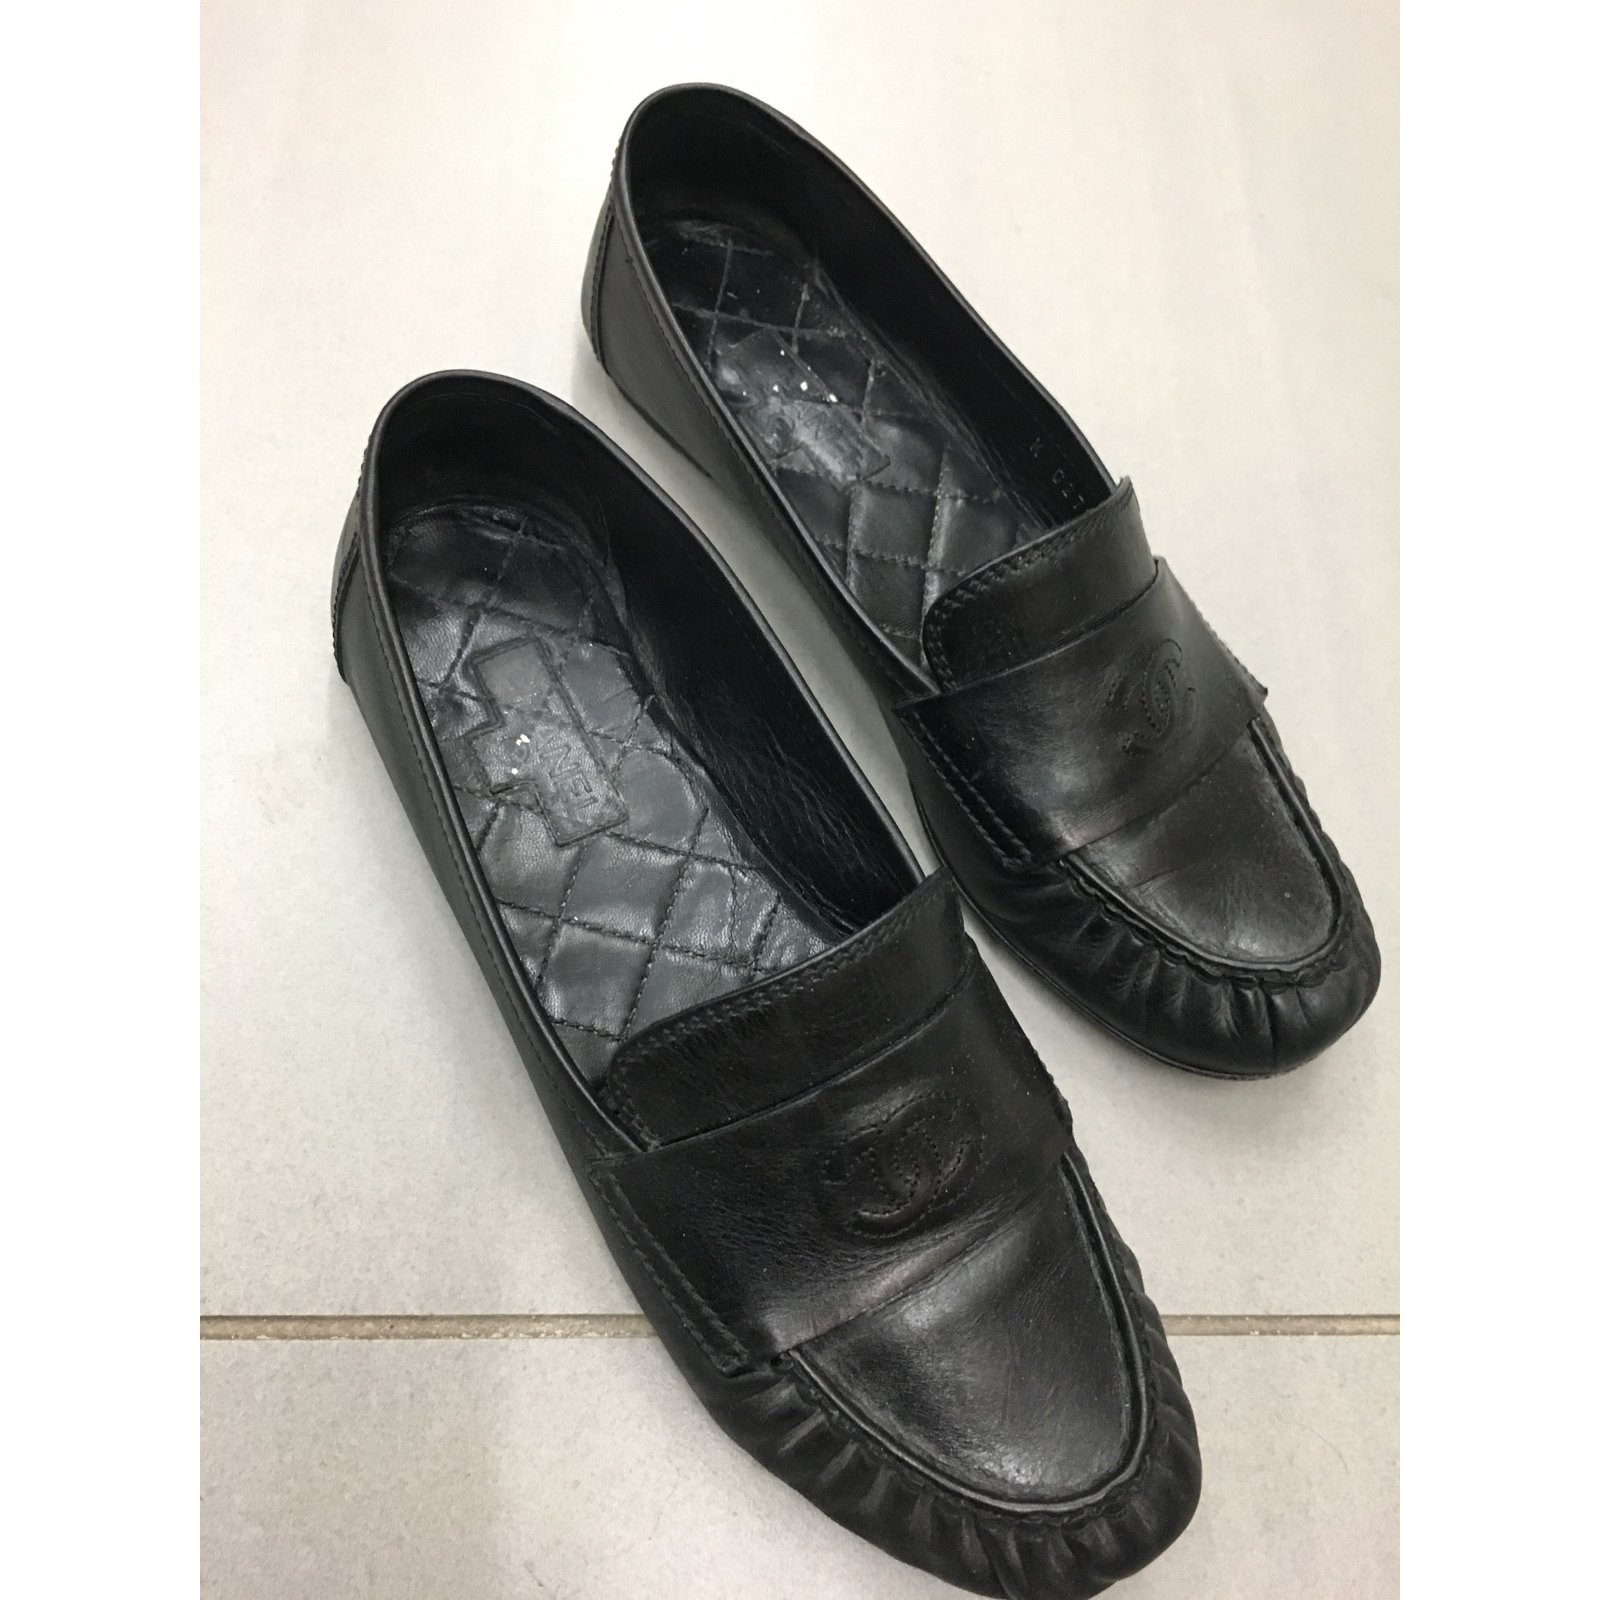 a83cb7b92170 Facebook · Pin This. Chanel Flats Flats Leather Black ref.56661